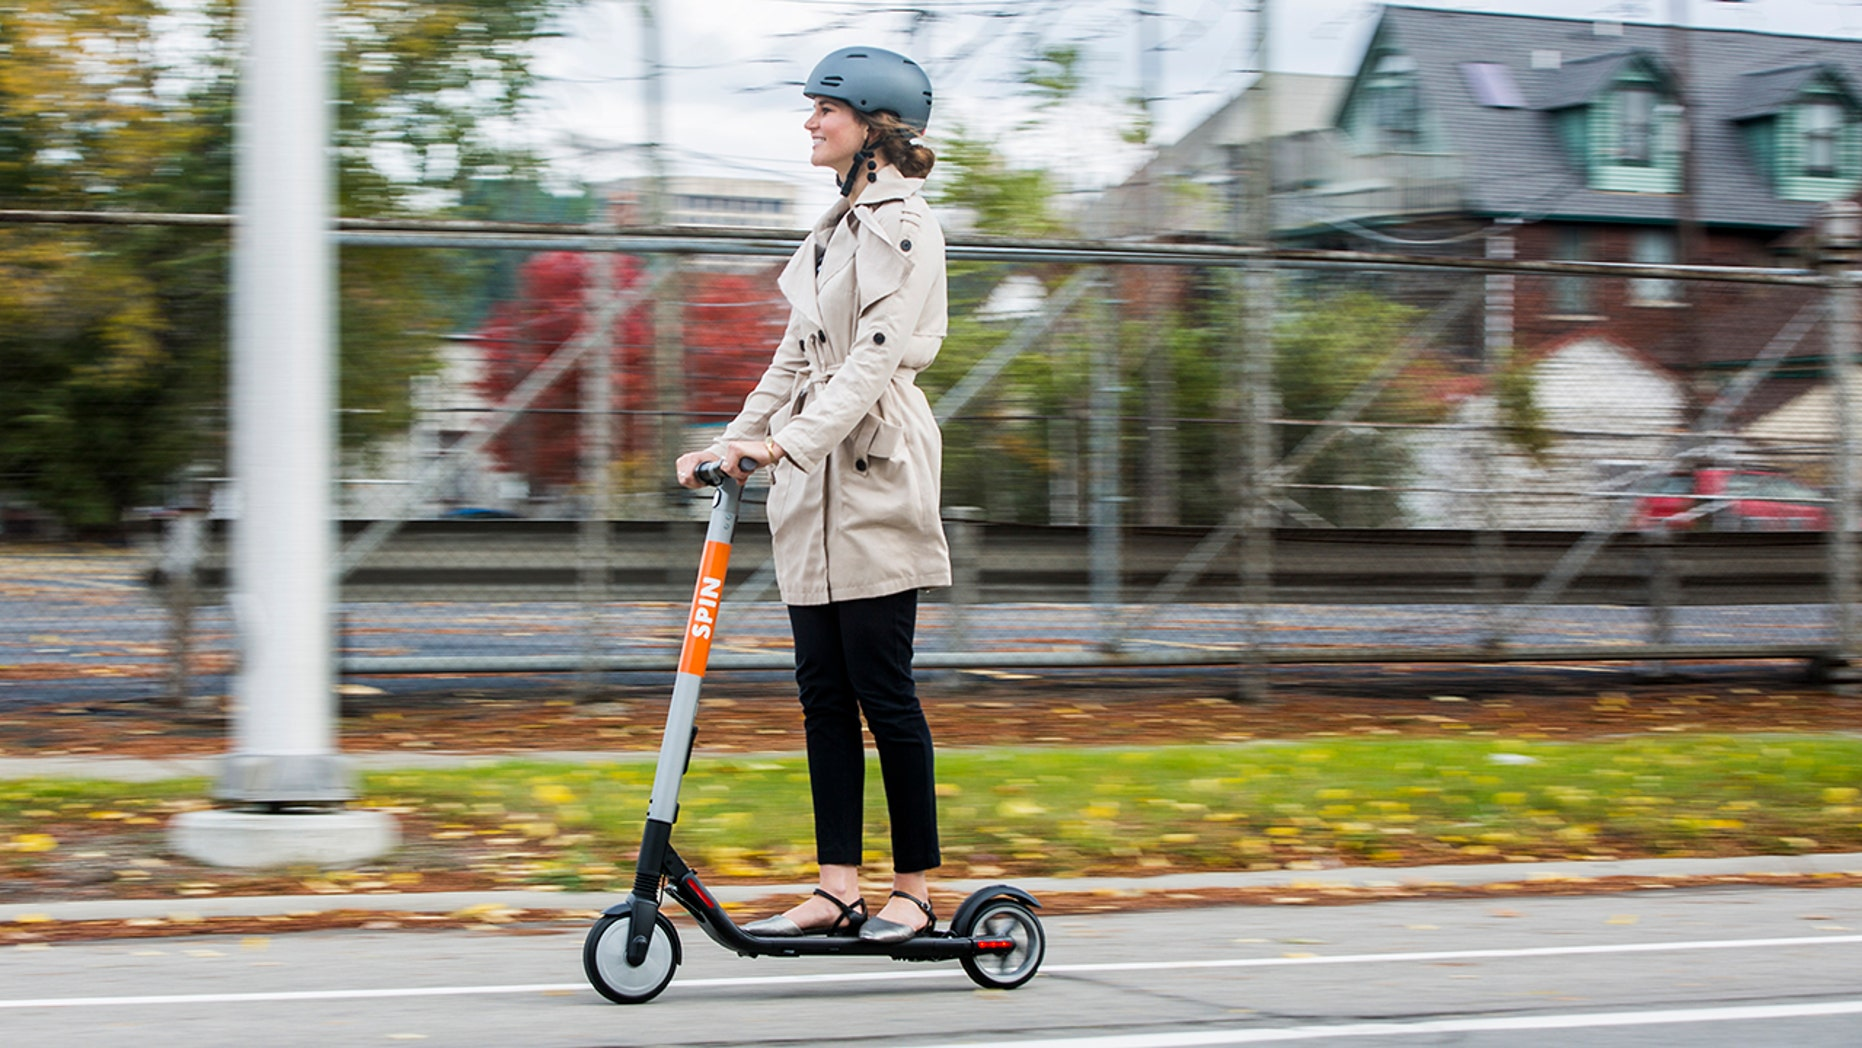 LIFESTYLE Ford is buying scooter startup Spin (F)